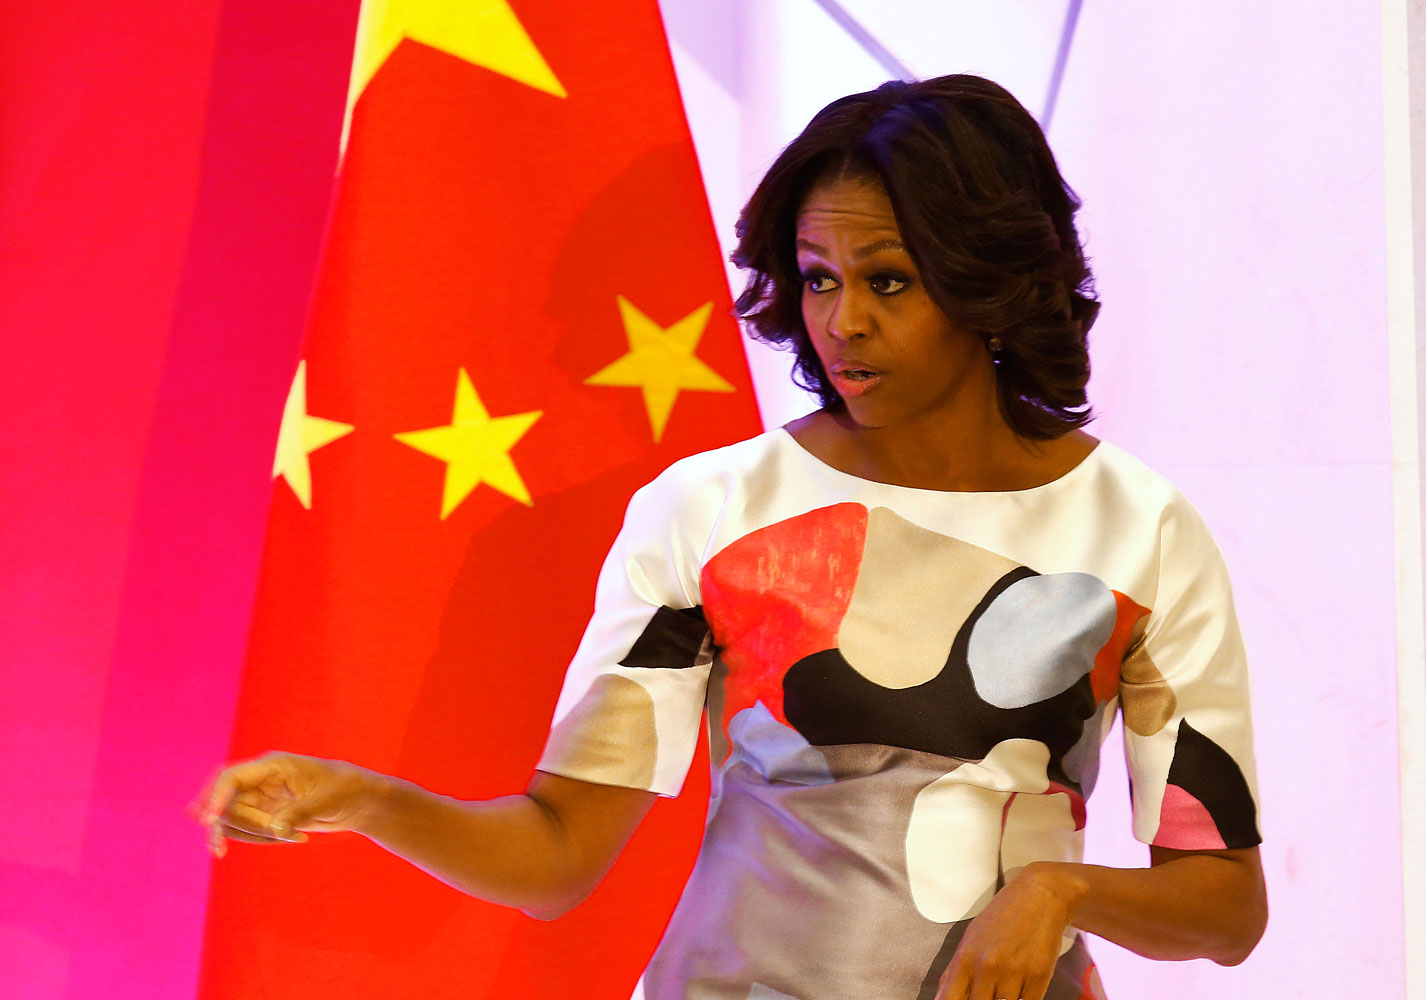 The First Lady, in a multi-toned dress, during a speech at  Peking University in Beijing, March 22, 2014.